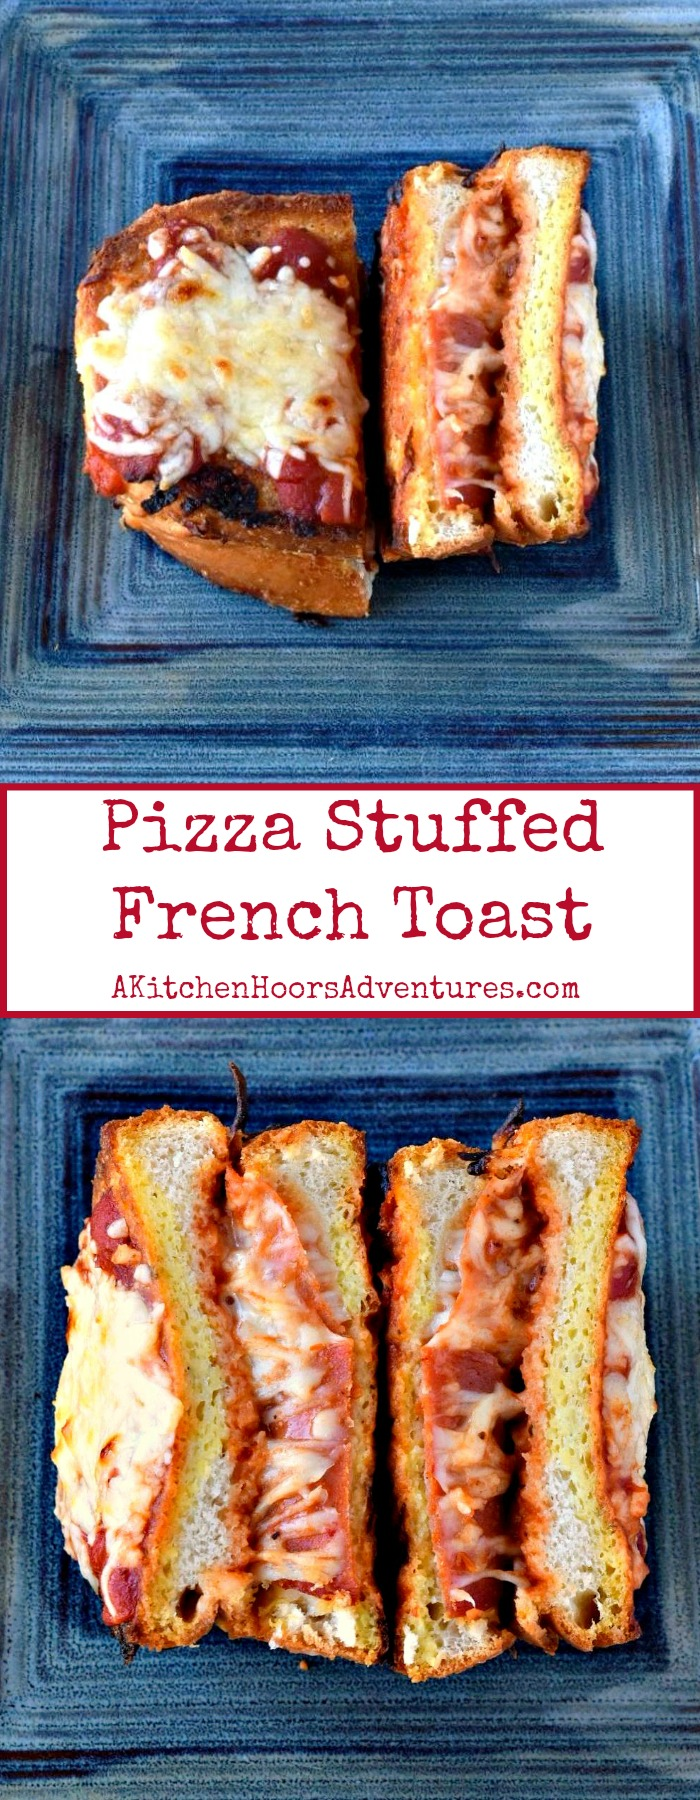 This is not your average French toast! Step outside the norm for once (or twice, or the bazillionthe time).  Pizza Stuffed French Toast is savory and delicious enough to serve for any meal.  Make it for breakfast and surprise your kids with pizza for breakfast!  Add a soup or salad and make it lunch or dinner.  Either way you serve it up, your family will love it! #FrenchToastDay #NationalFrenchToastDay #Pizzastuffed #frenchtoast #pepperoni #pizzaforbreakfast